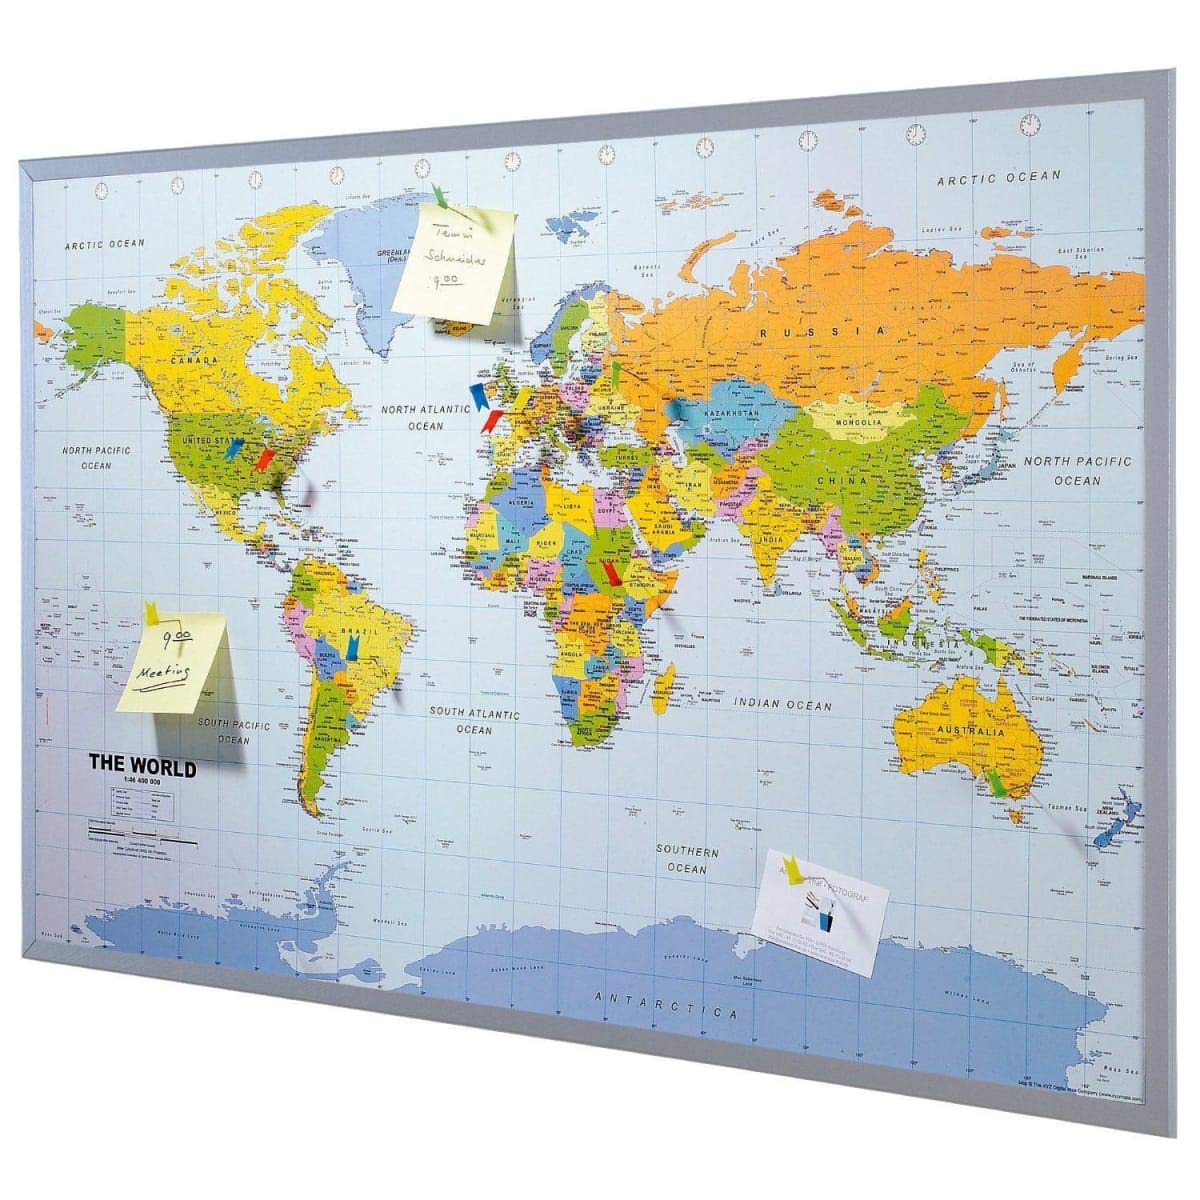 Map Of The World In Detail.Pinboard World Map Or Map Of Europe 90 X 60 Cm Includes 12 Flag Pins World